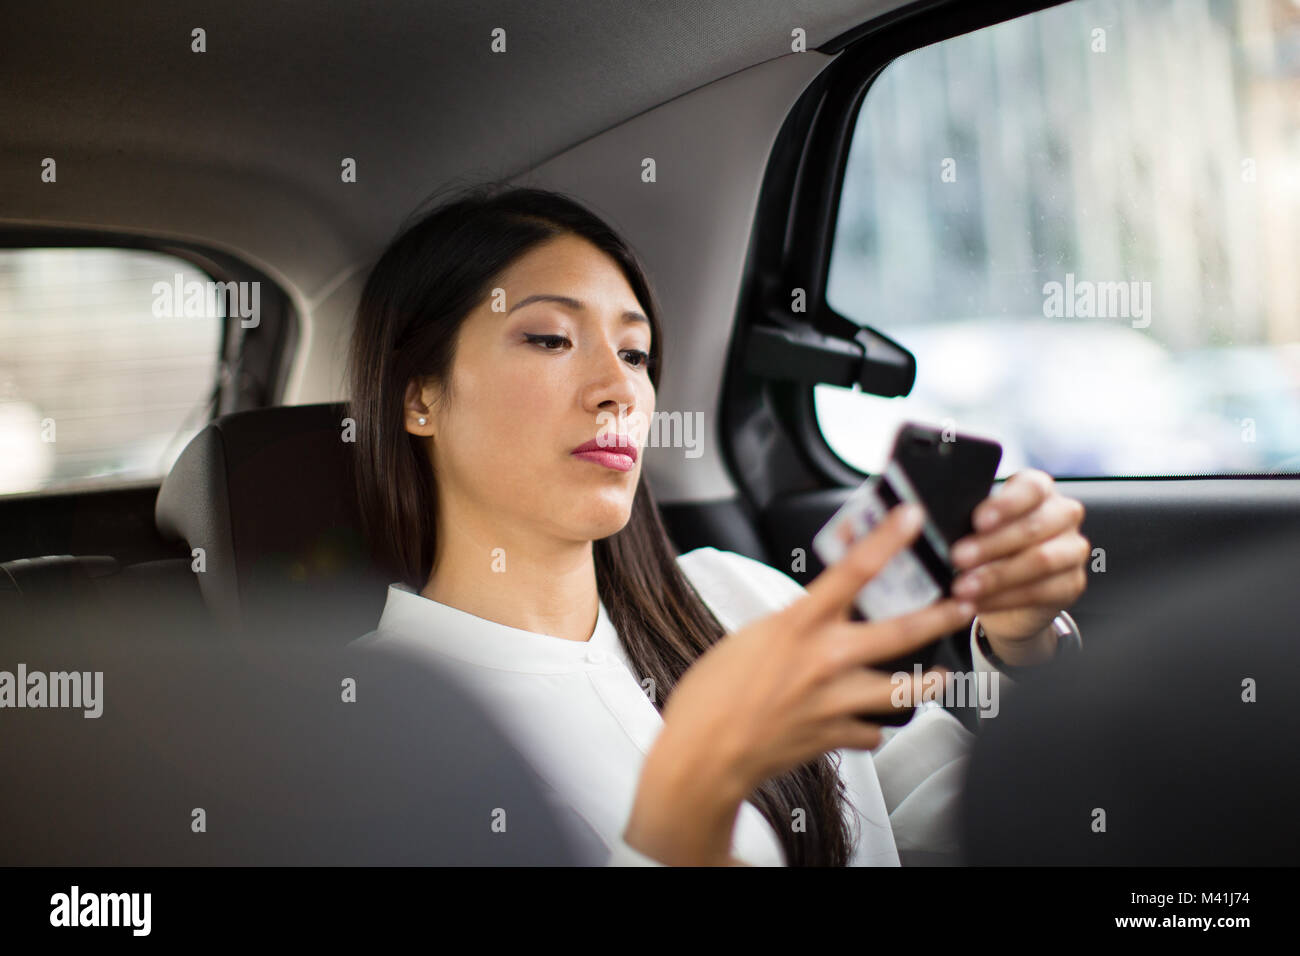 Businesswoman paying via app for taxi cab ride - Stock Image